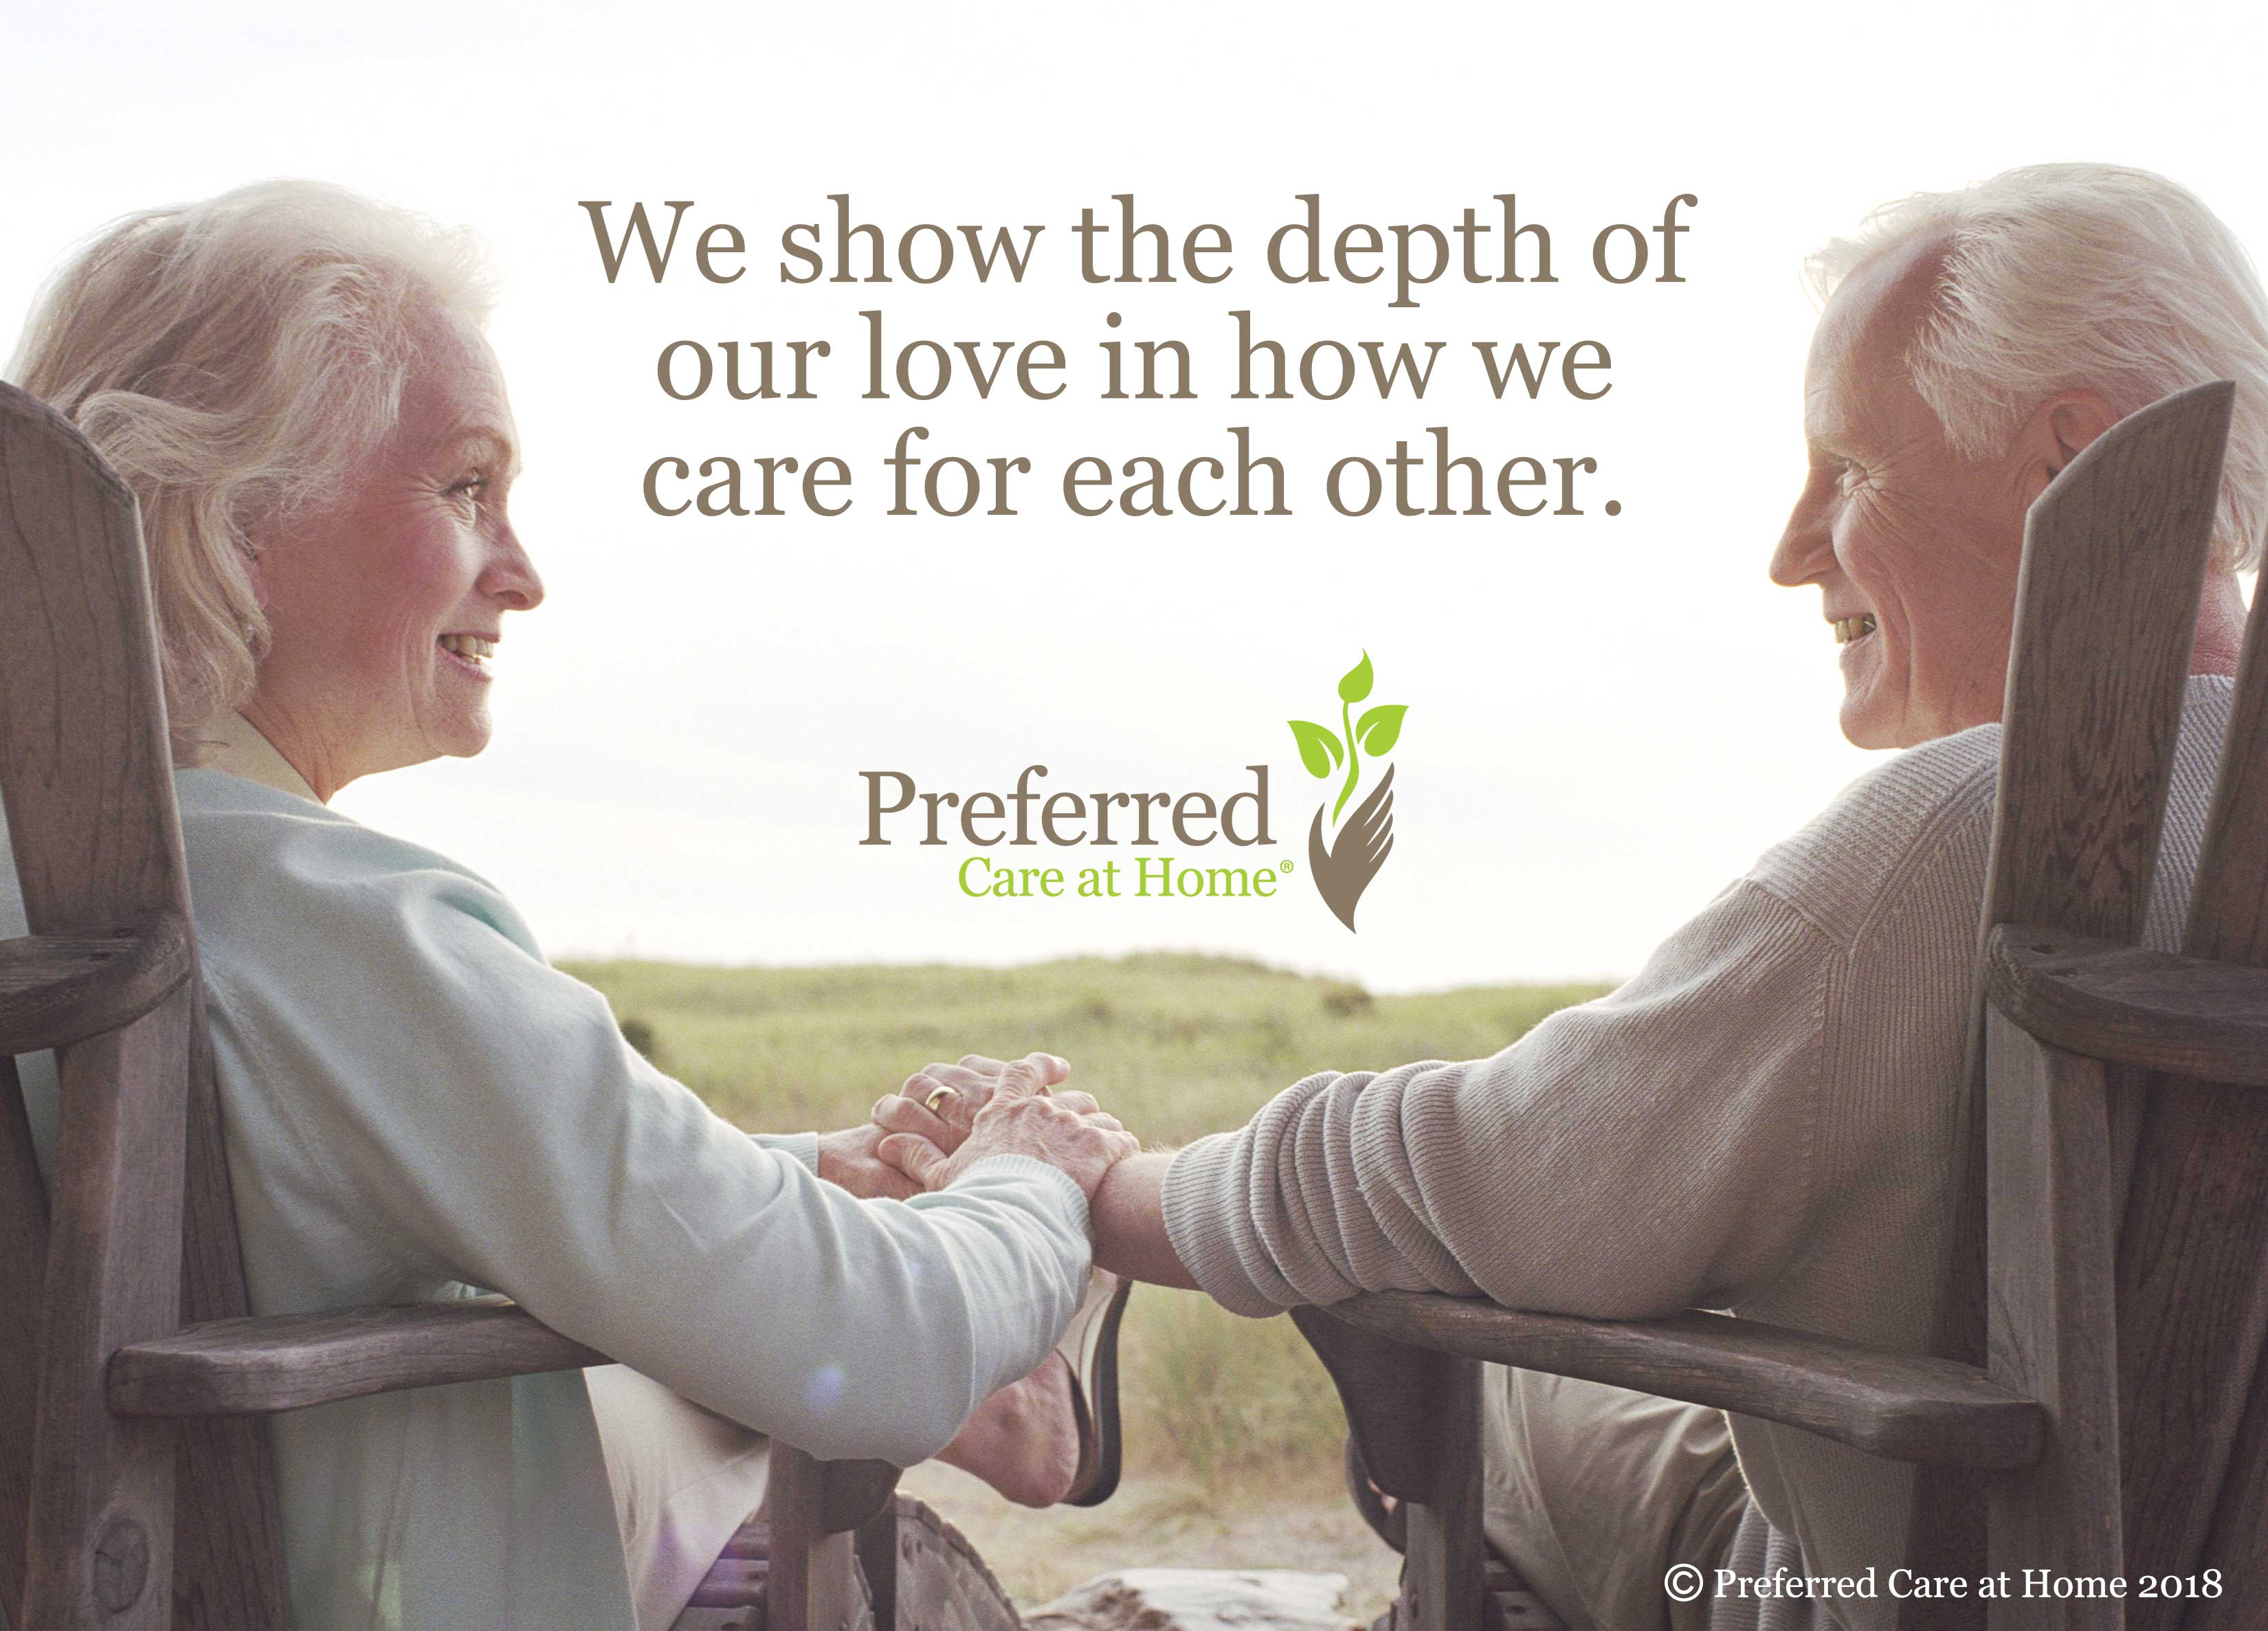 Demonstrate Loving Care this Valentine's Day and Every Day